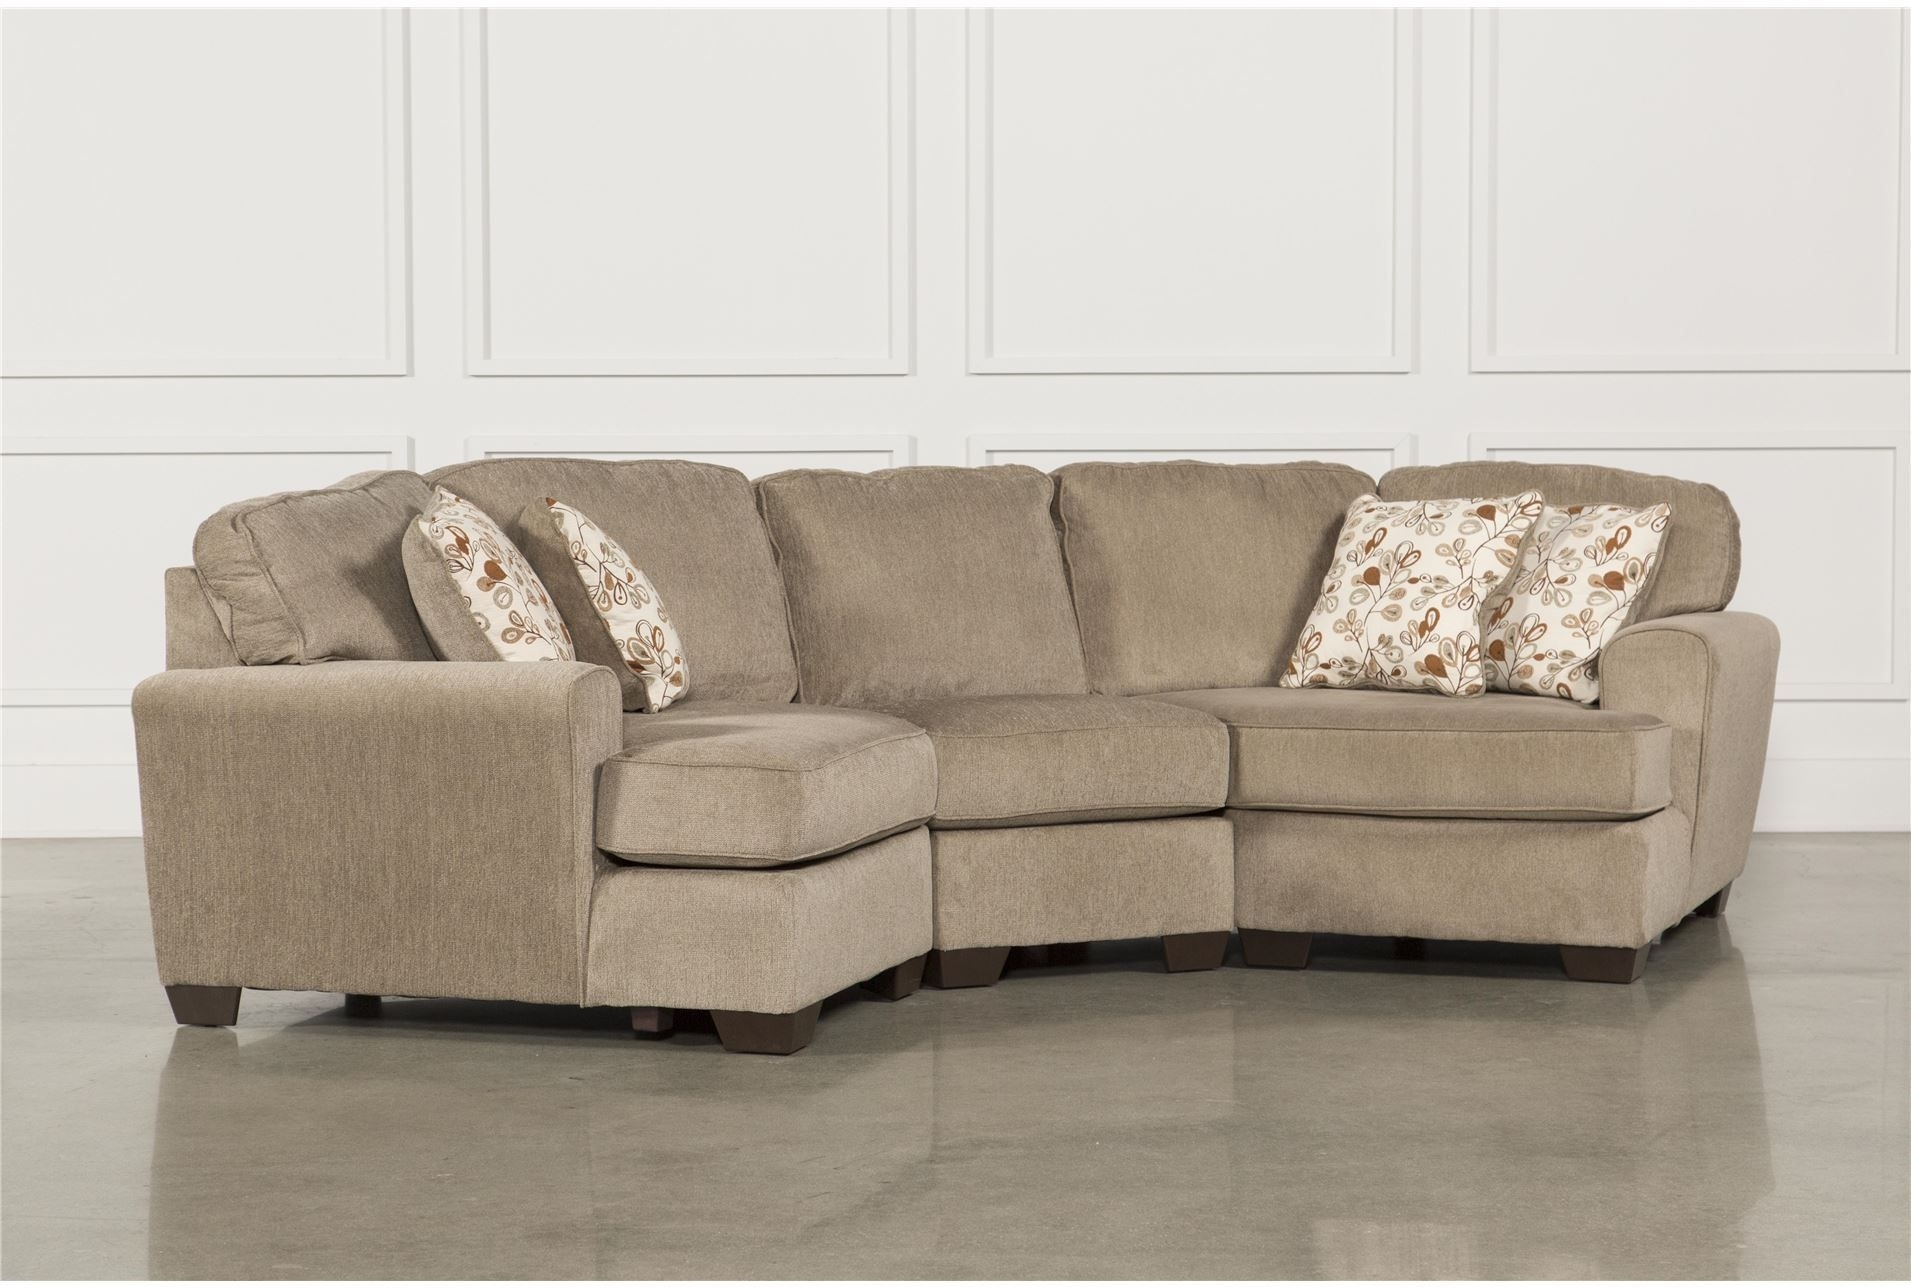 "Patola Park 3 Piece Sectional W/2 Cuddlers Dimensions: 152""w X 49""d For Karen 3 Piece Sectionals (View 5 of 25)"